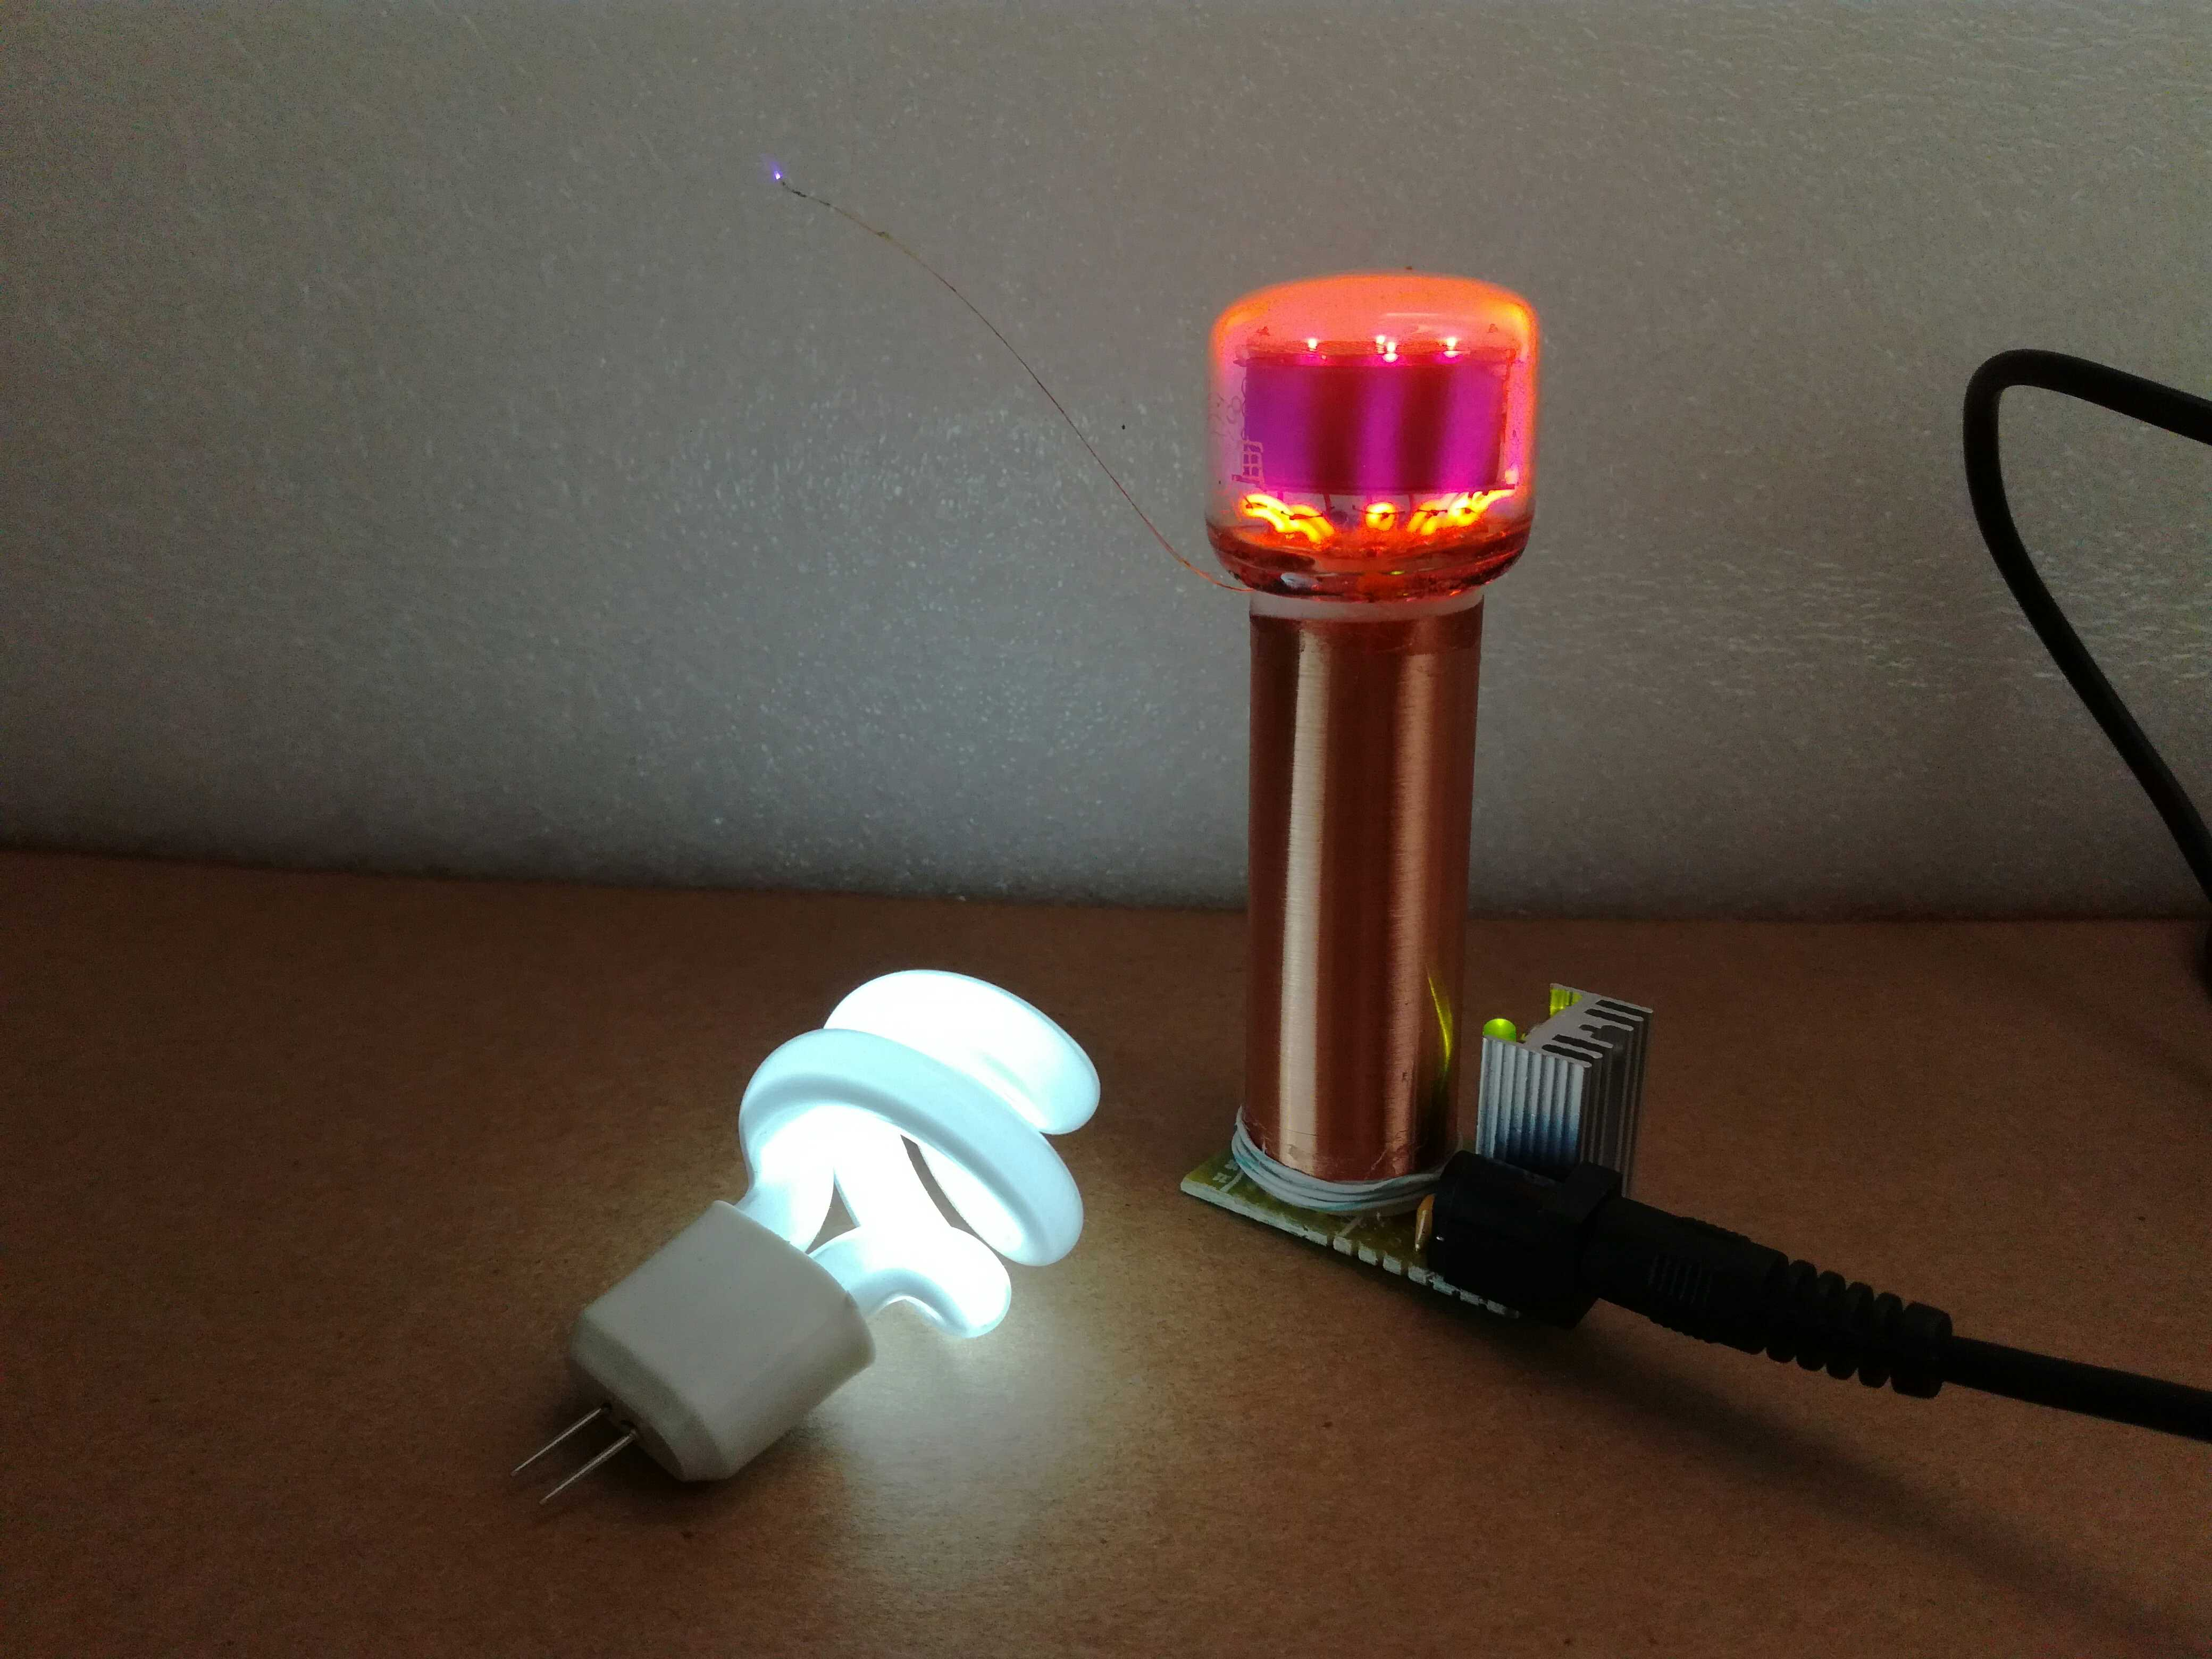 High Quality The Product Comprises A Tesla Coil, A Power Supply, A Glow Tube, And A  Small Energy Saving Lamp Tube.